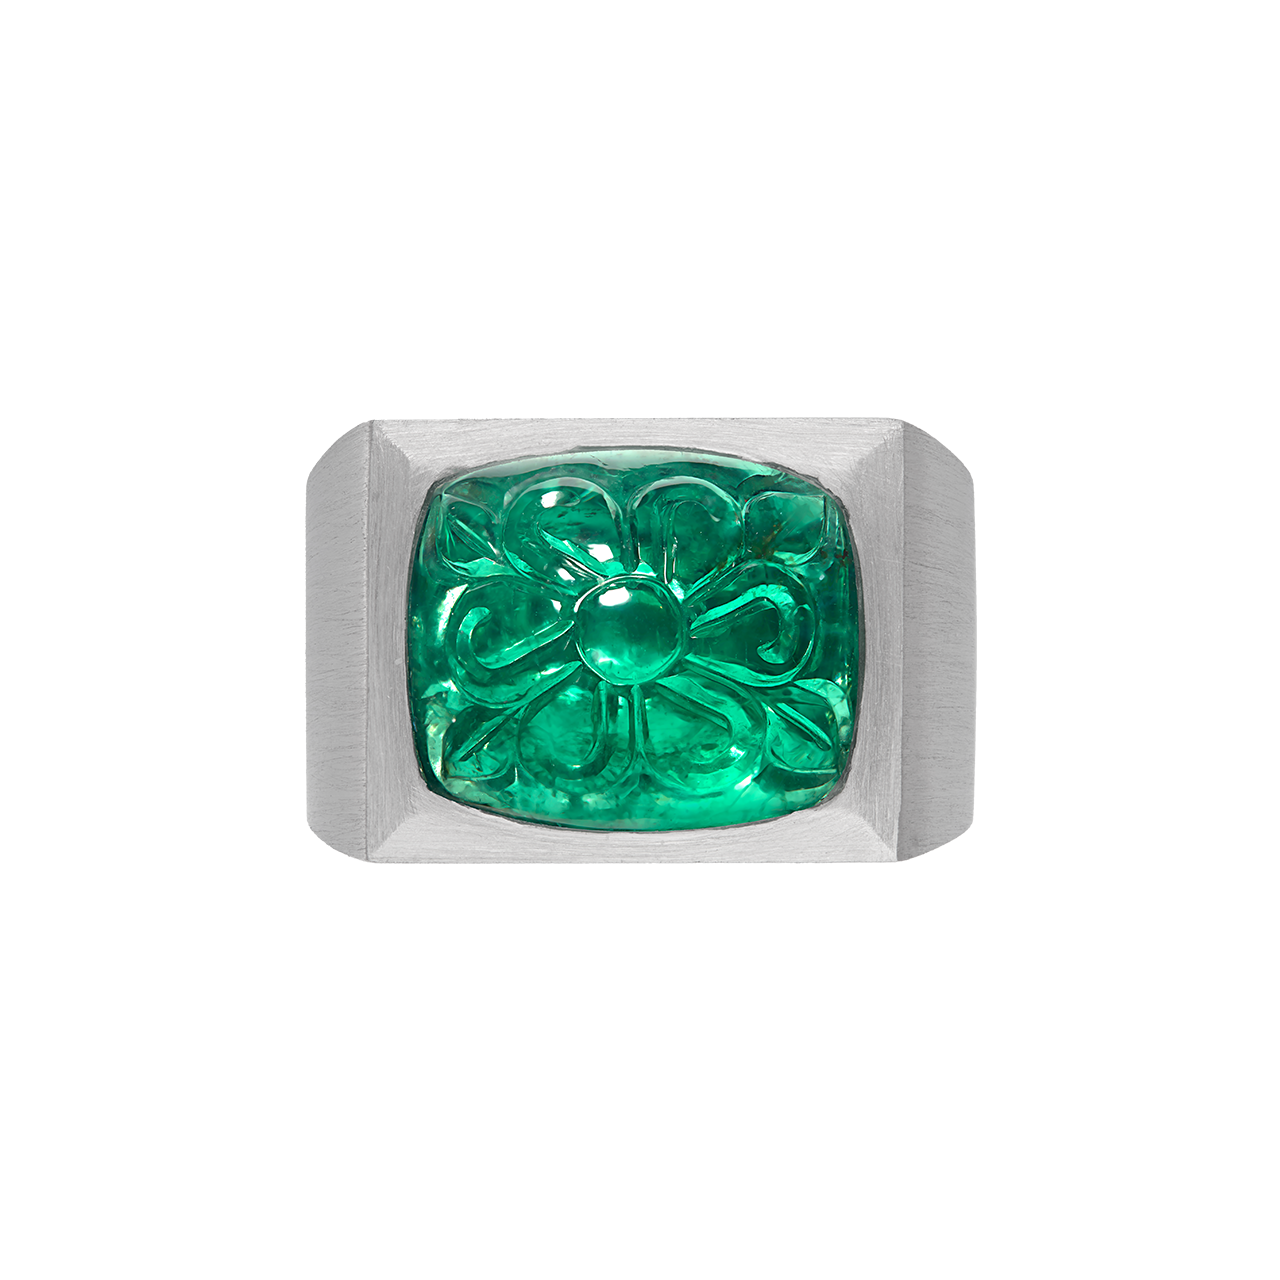 AGL 尚比亞雕刻祖母綠戒指 15.78克拉